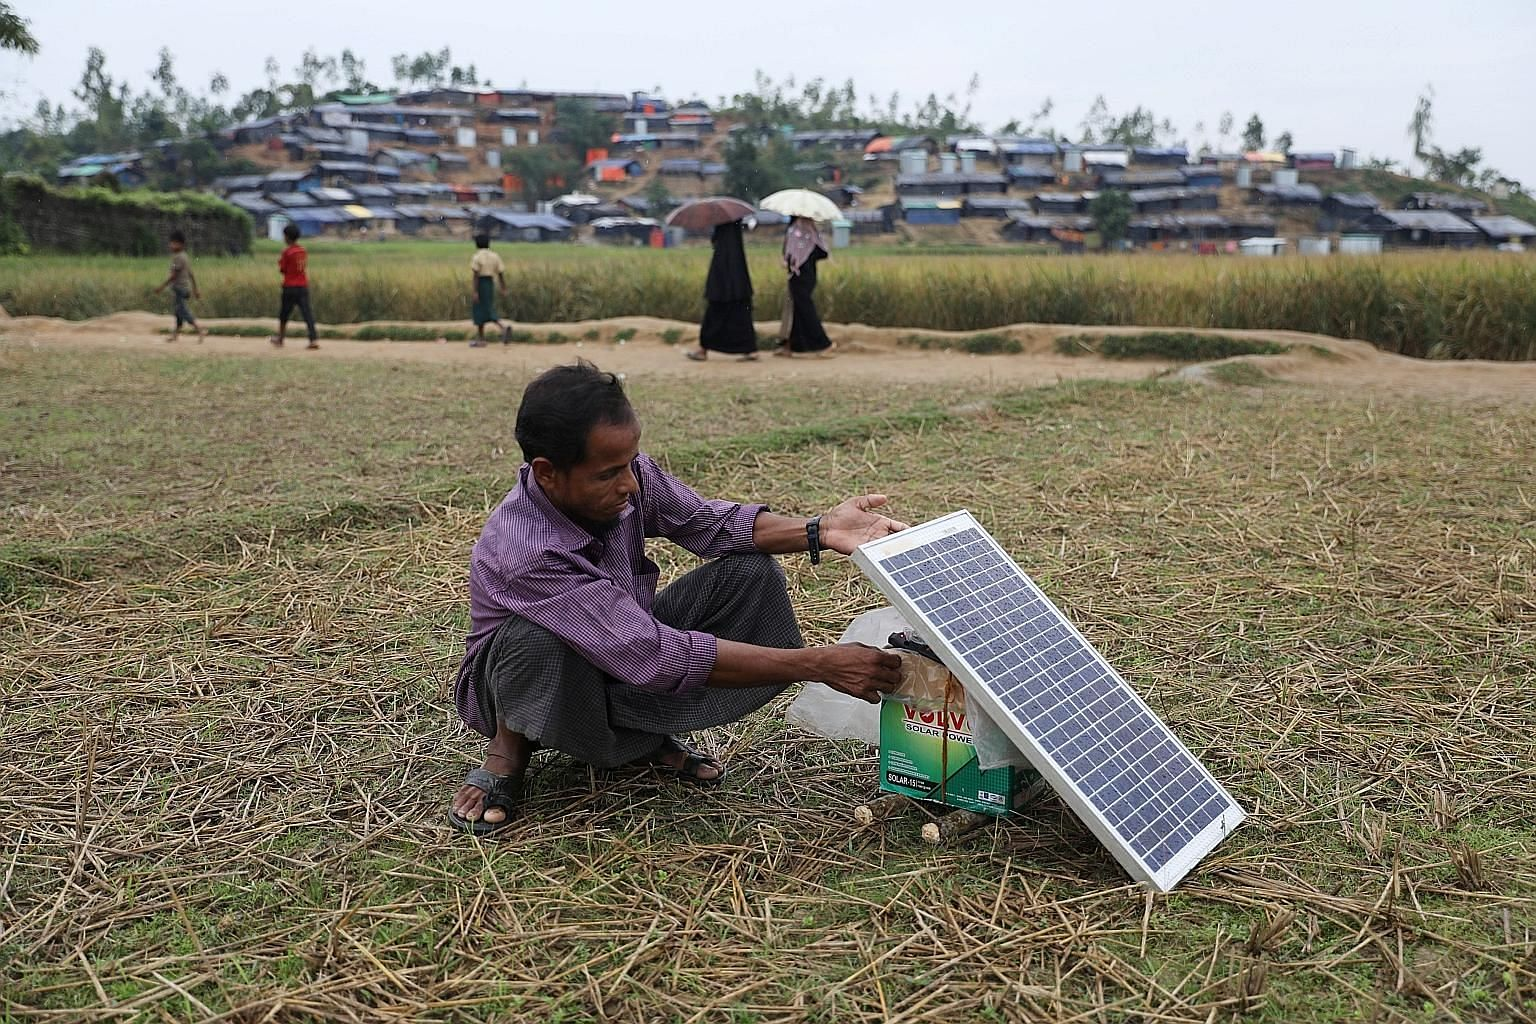 A Rohingya refugee using a solar panel to charge his mobile phone at the Palong Khali refugee camp in Cox's Bazar. Some refugees relied on their phones for information on safe routes to take while fleeing Myanmar.